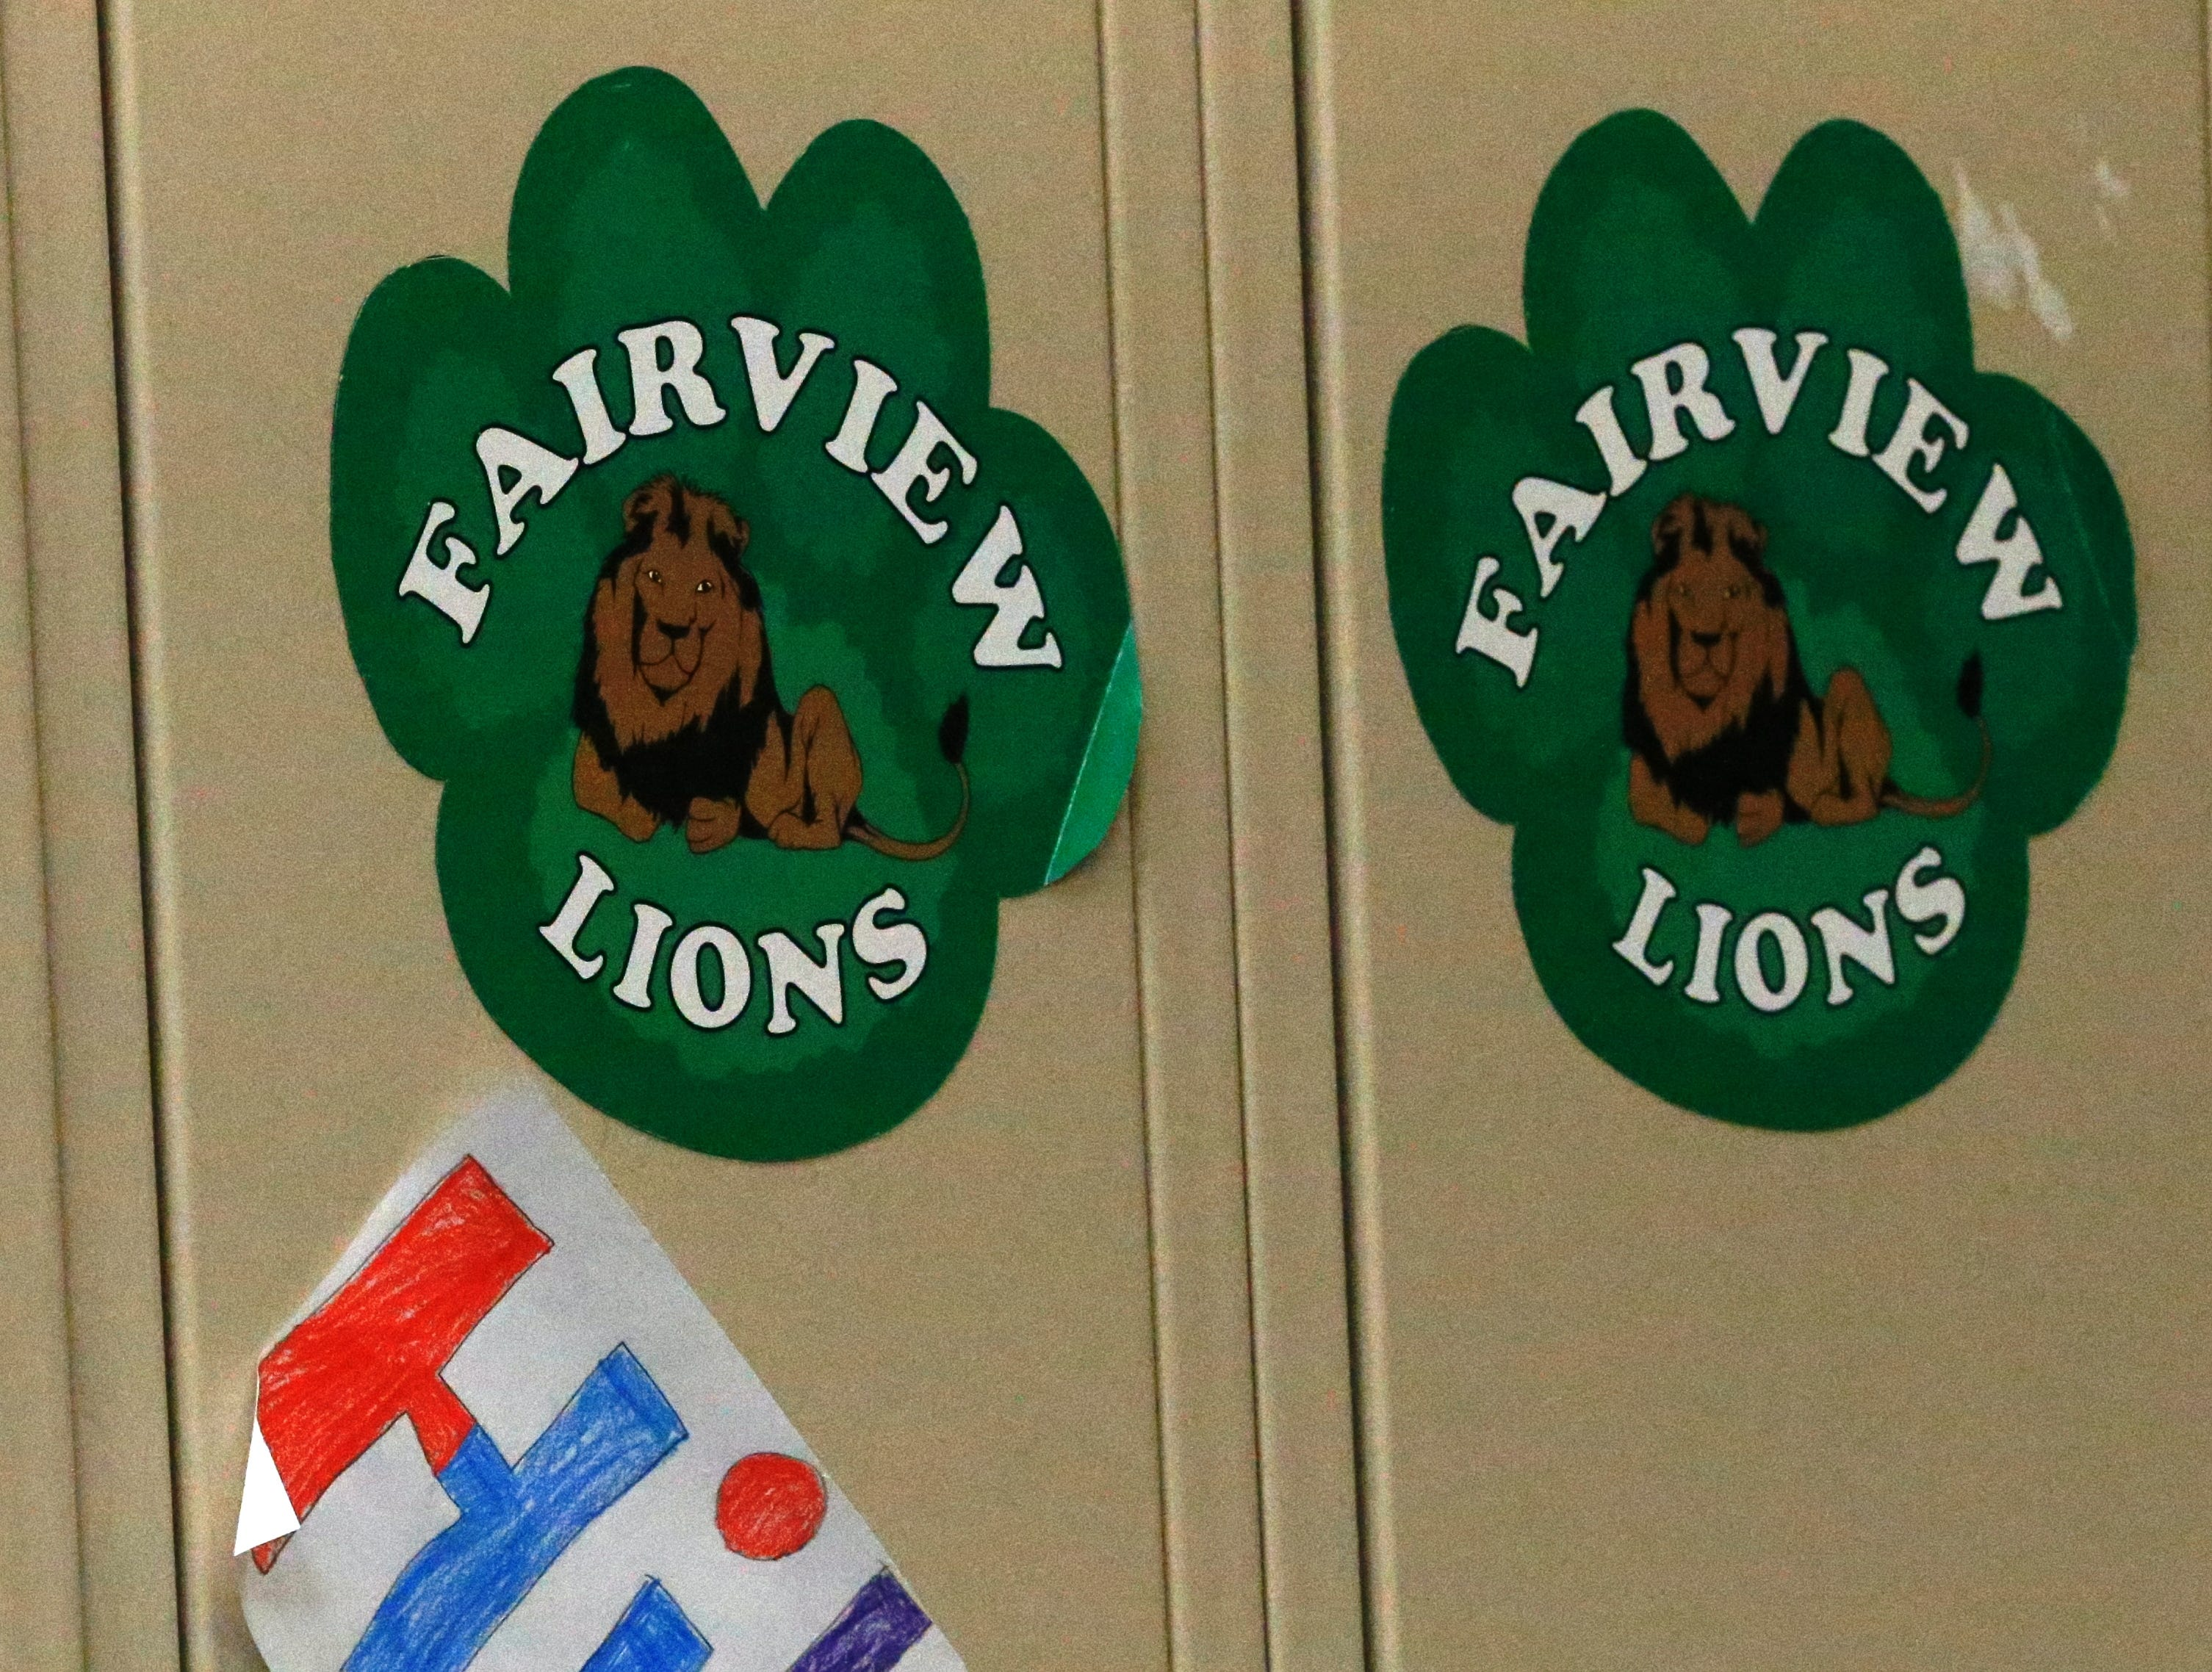 A picture hangs on a locker at Fairview Elementary School in Richmond drawn by the 'Josh Squad,' a store created by fourth-graders Javeonte Johnson and D. J. Allen to raise money for an Xbox One for classmate Joshua Idle, who was involved in an accident and lost his mom in Dec. 2018.